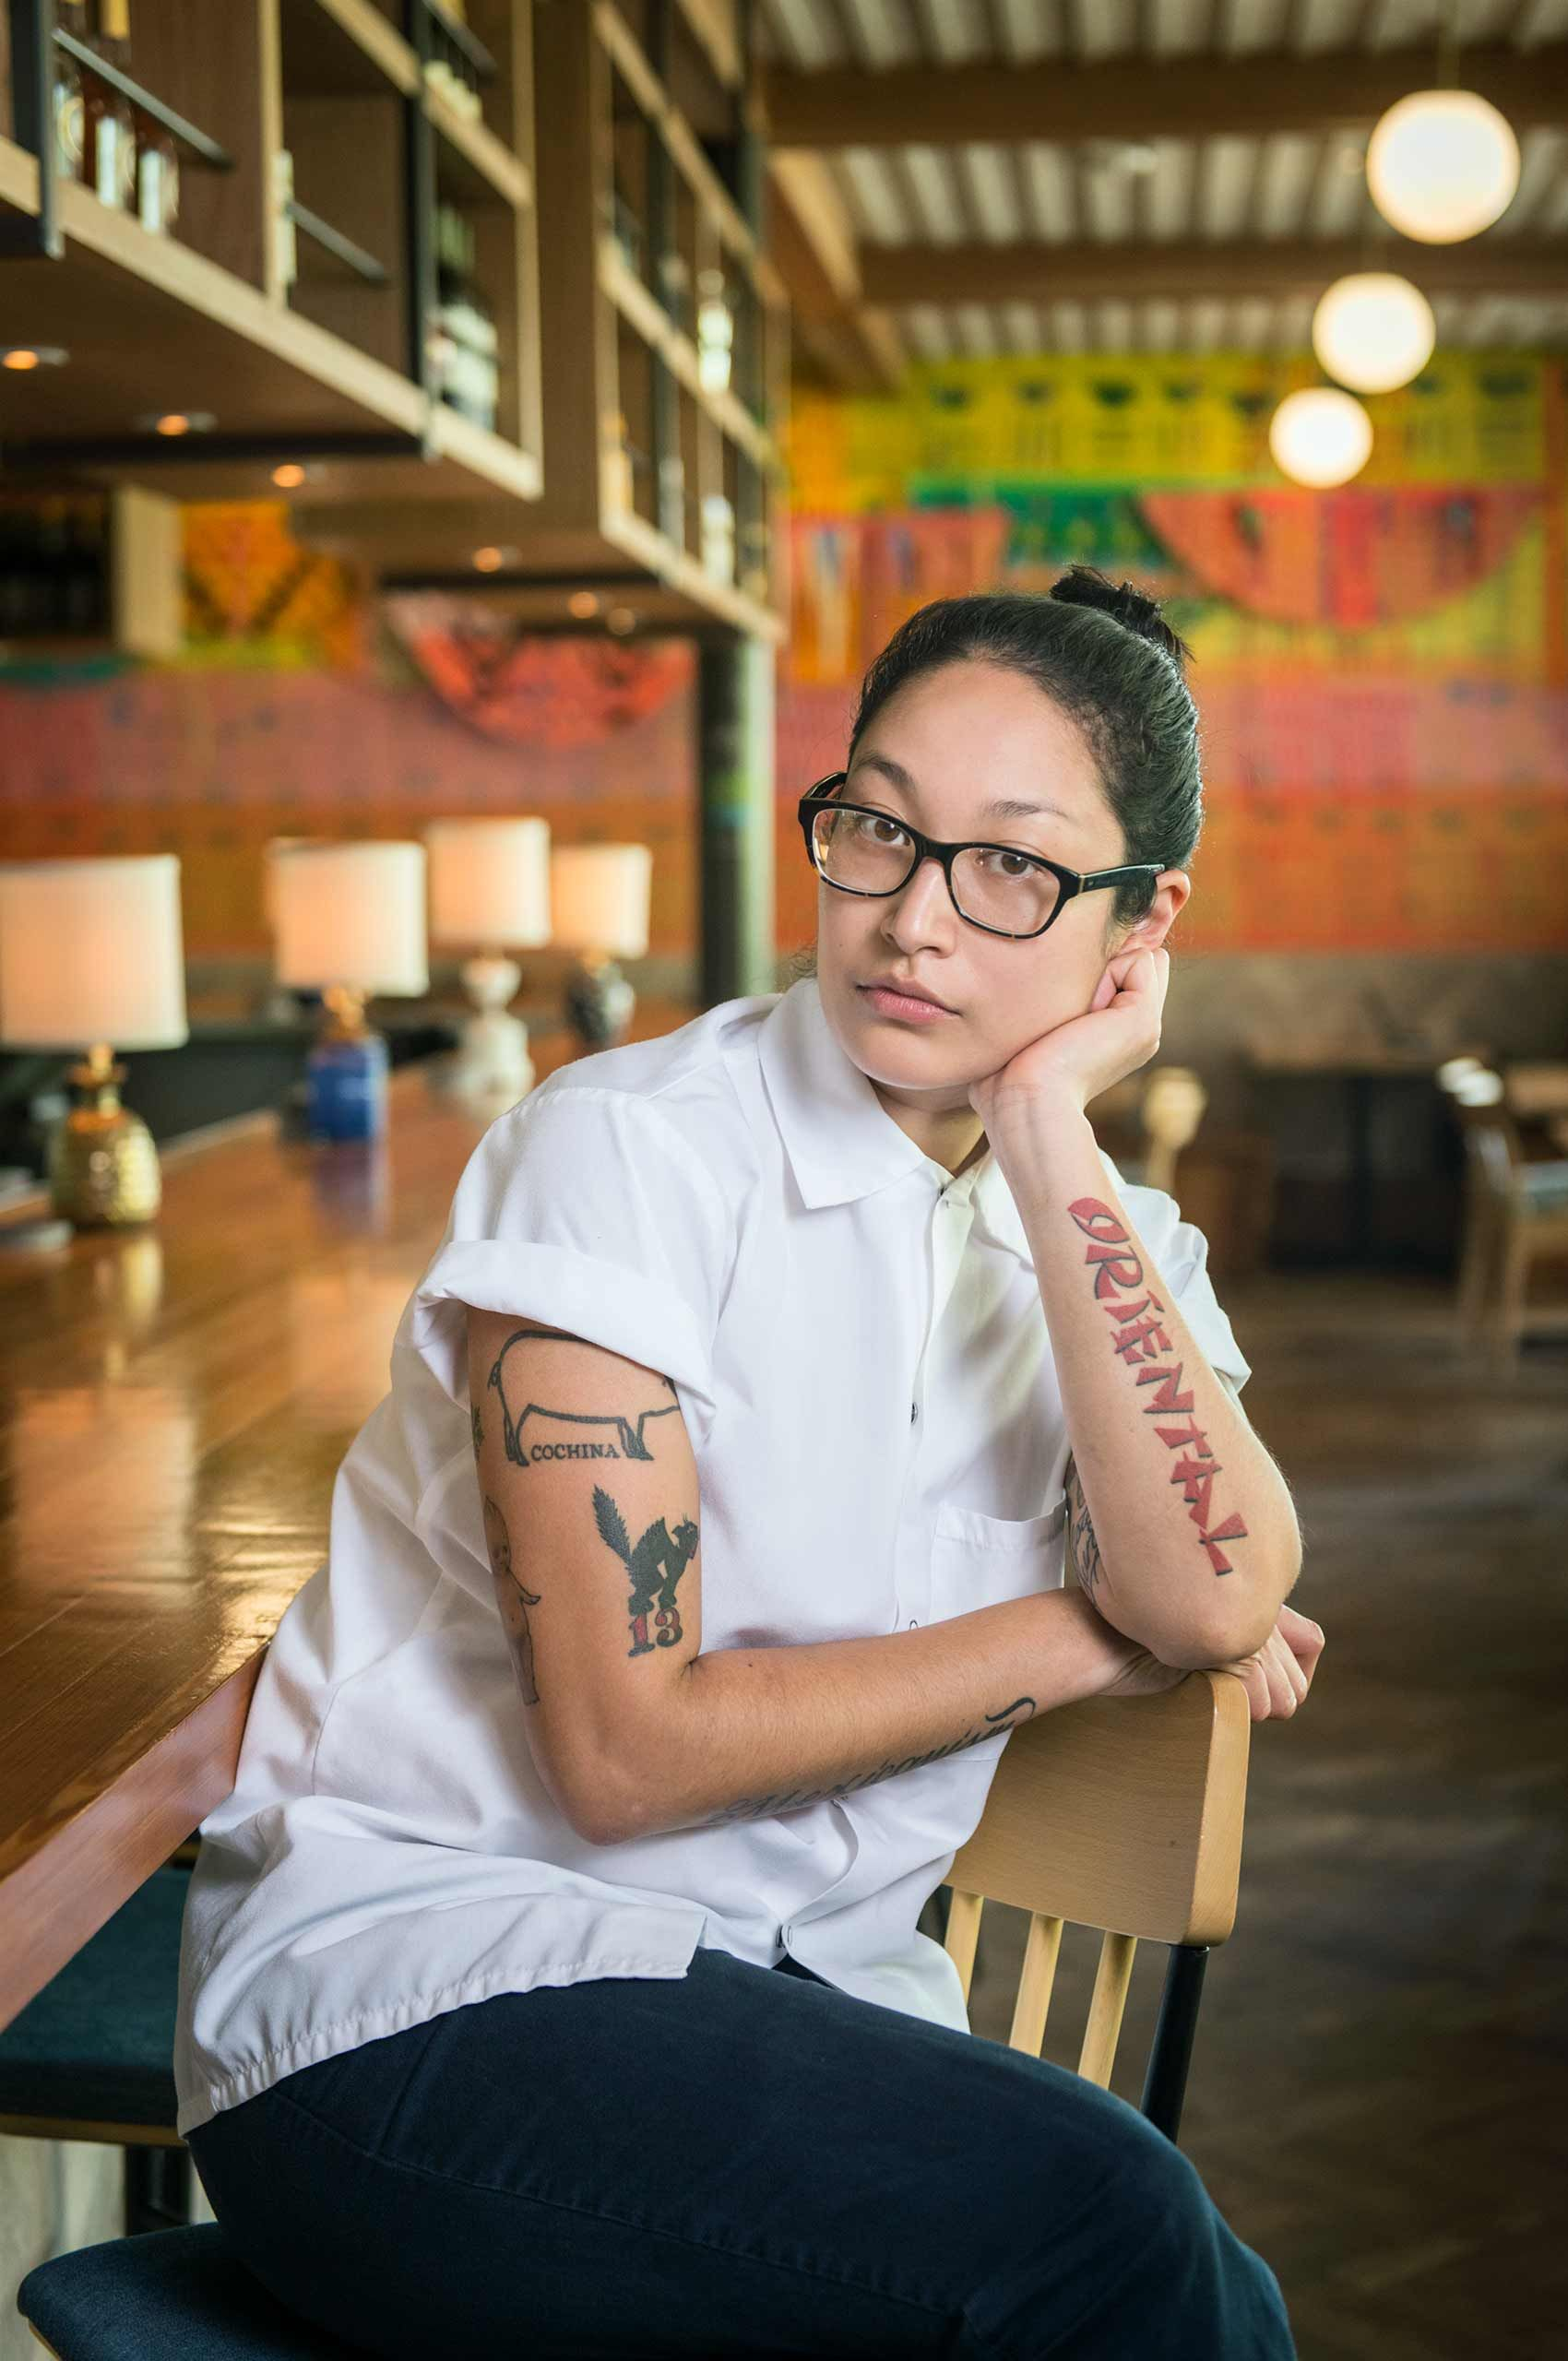 Chef-Angela-Hernandez-by-HenrikOlundPhotography.jpg